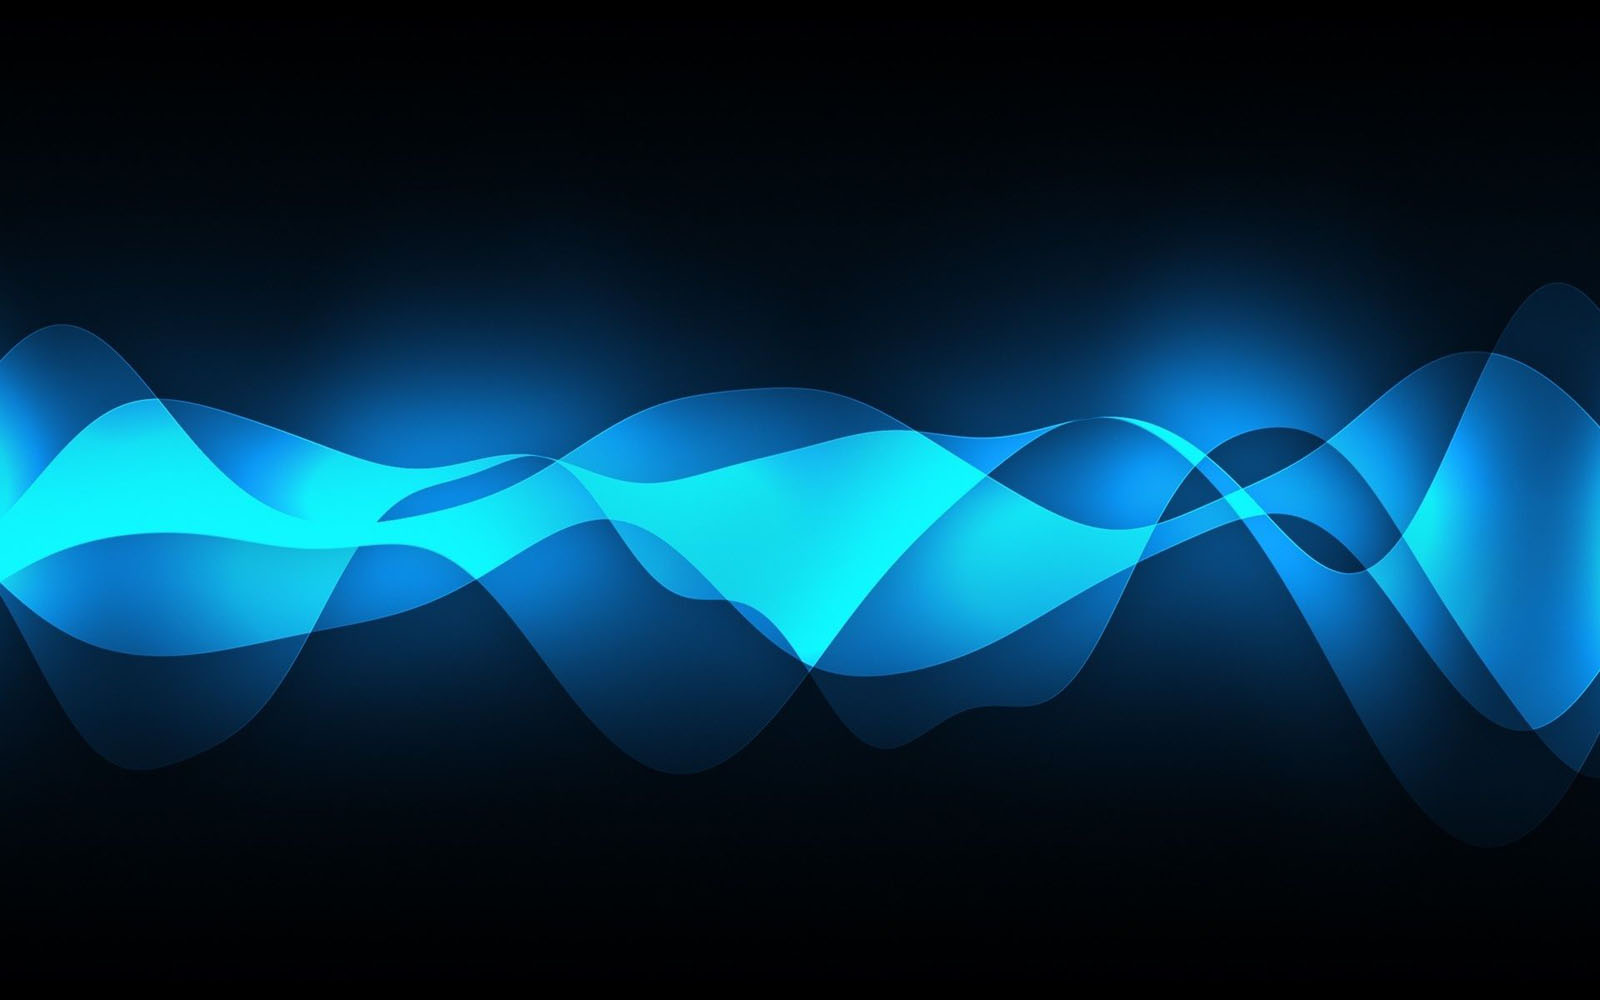 Download Free 3d Wallpapers For Windows 8 Wallpapers Abstract Waves Wallpapers